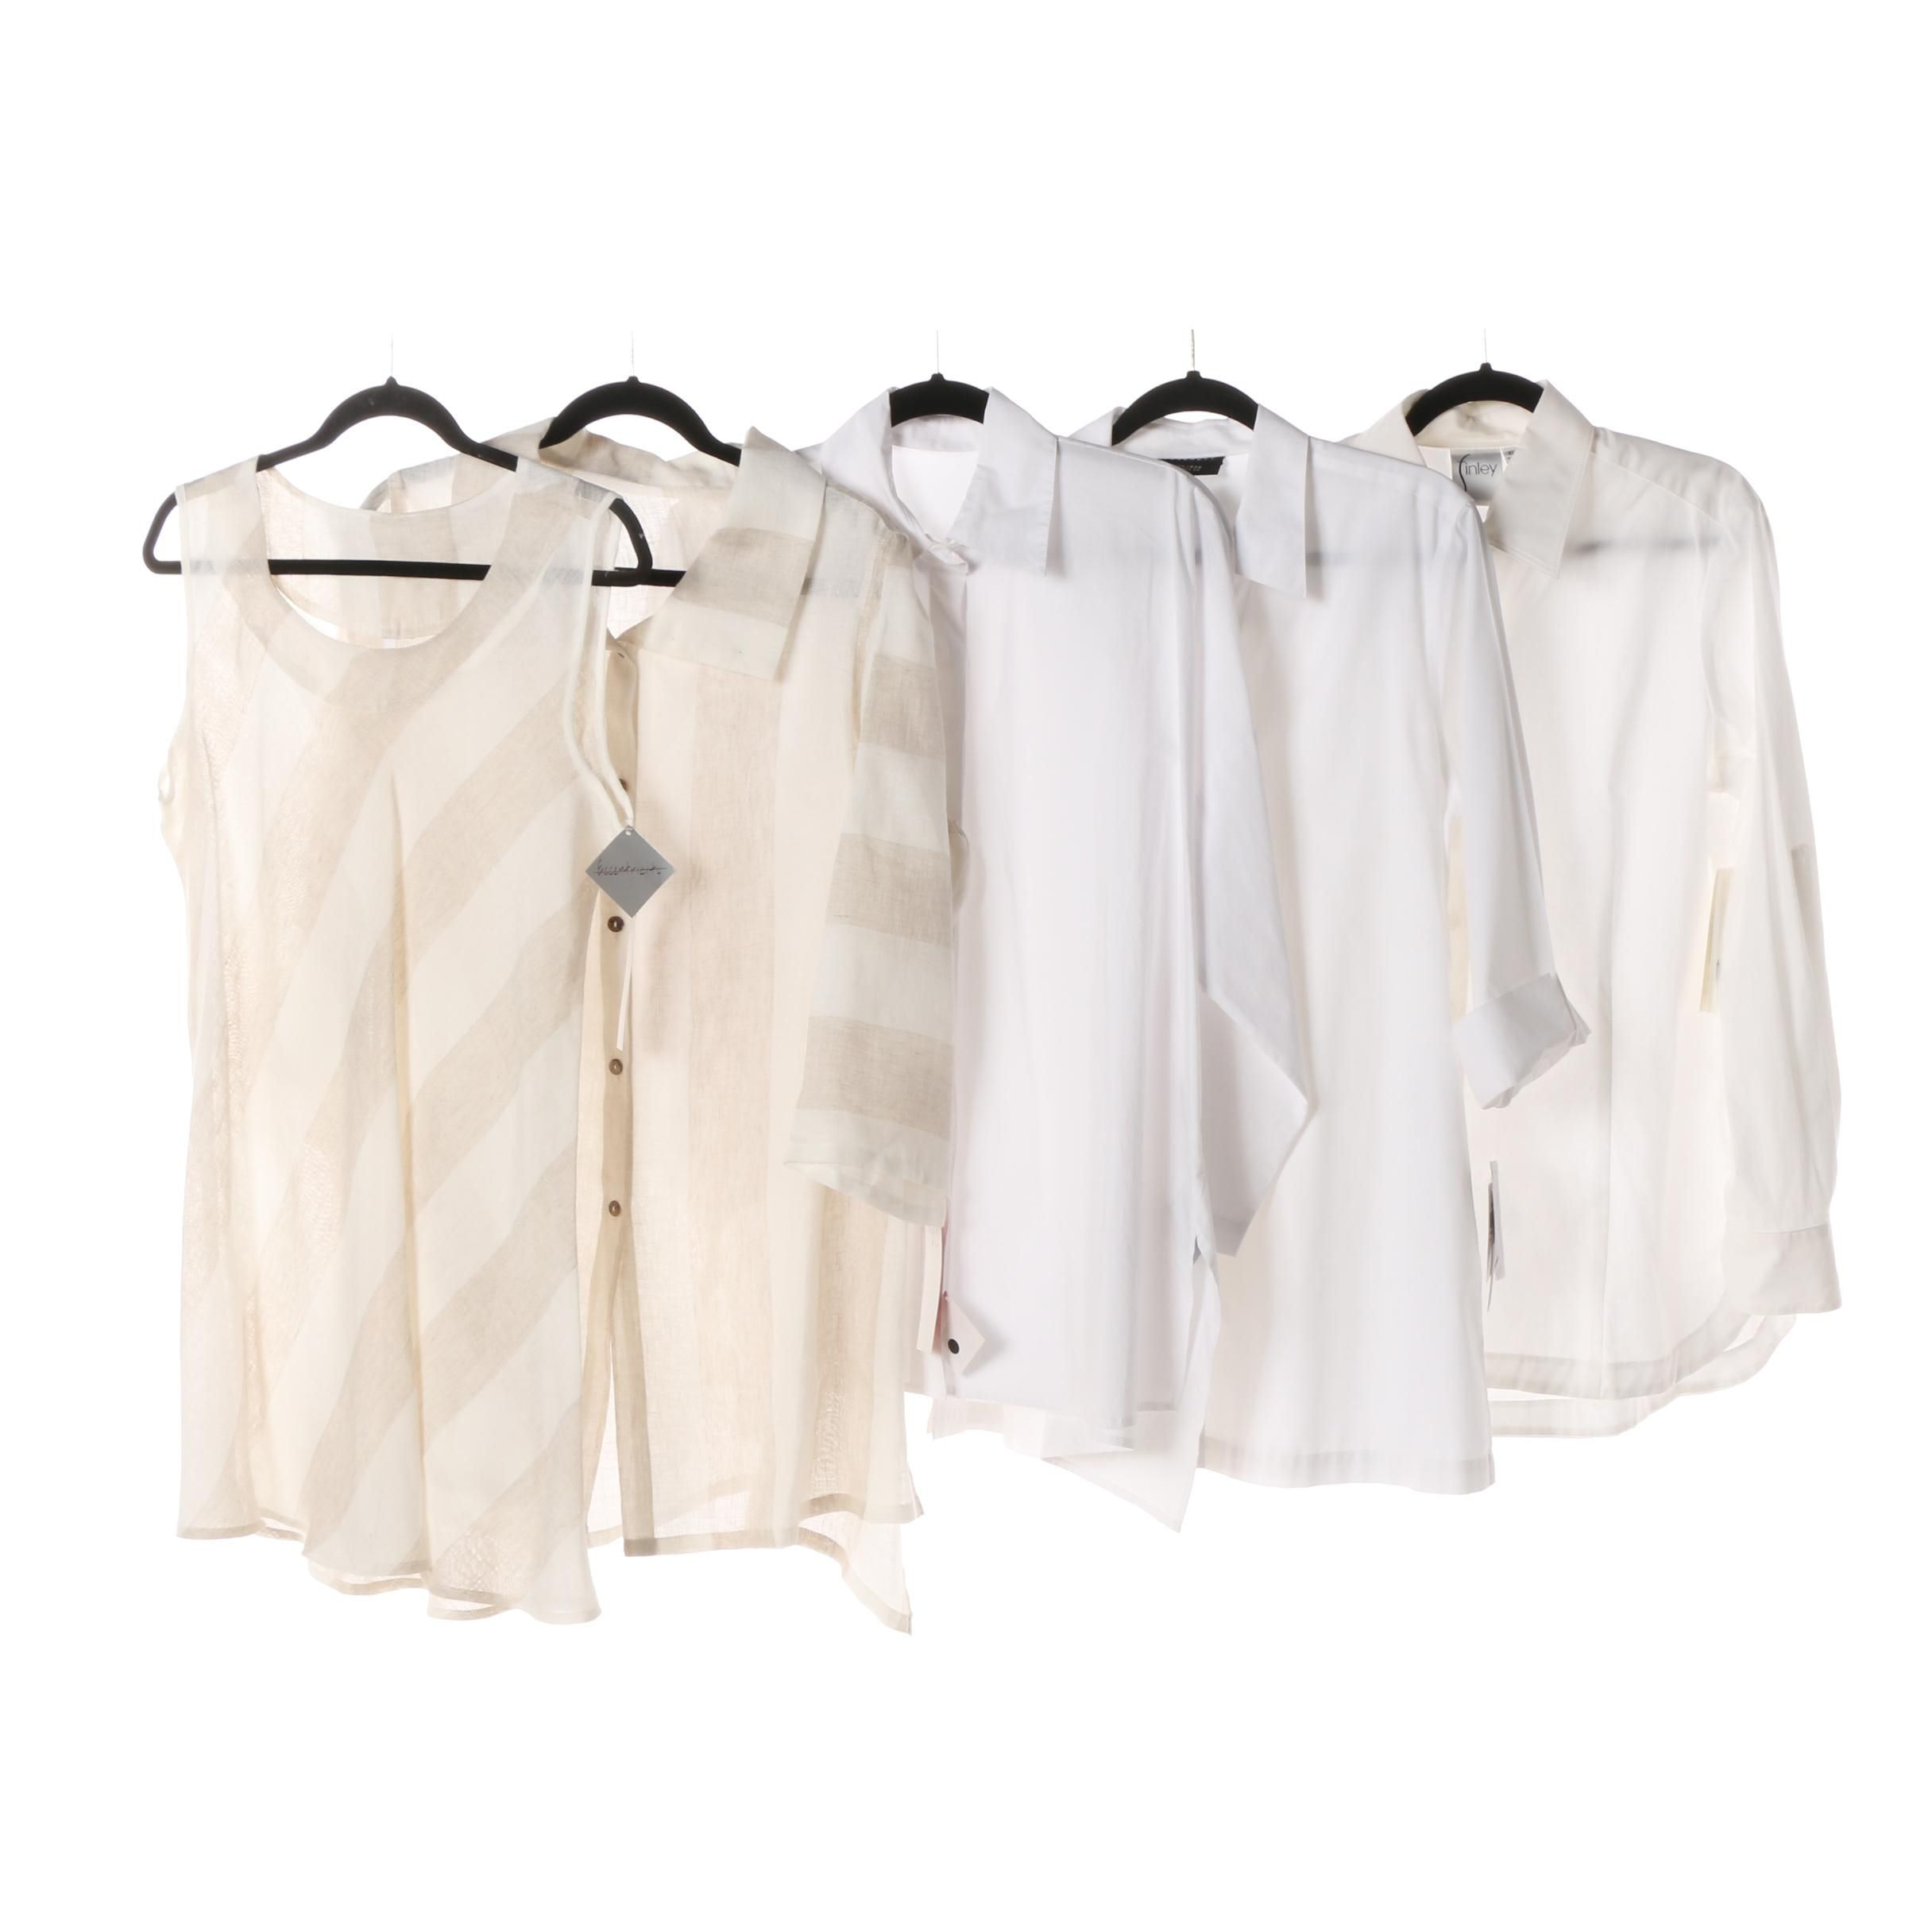 KIYO Striped Set with P. Taylor, Finley and Foxcroft White Blouses